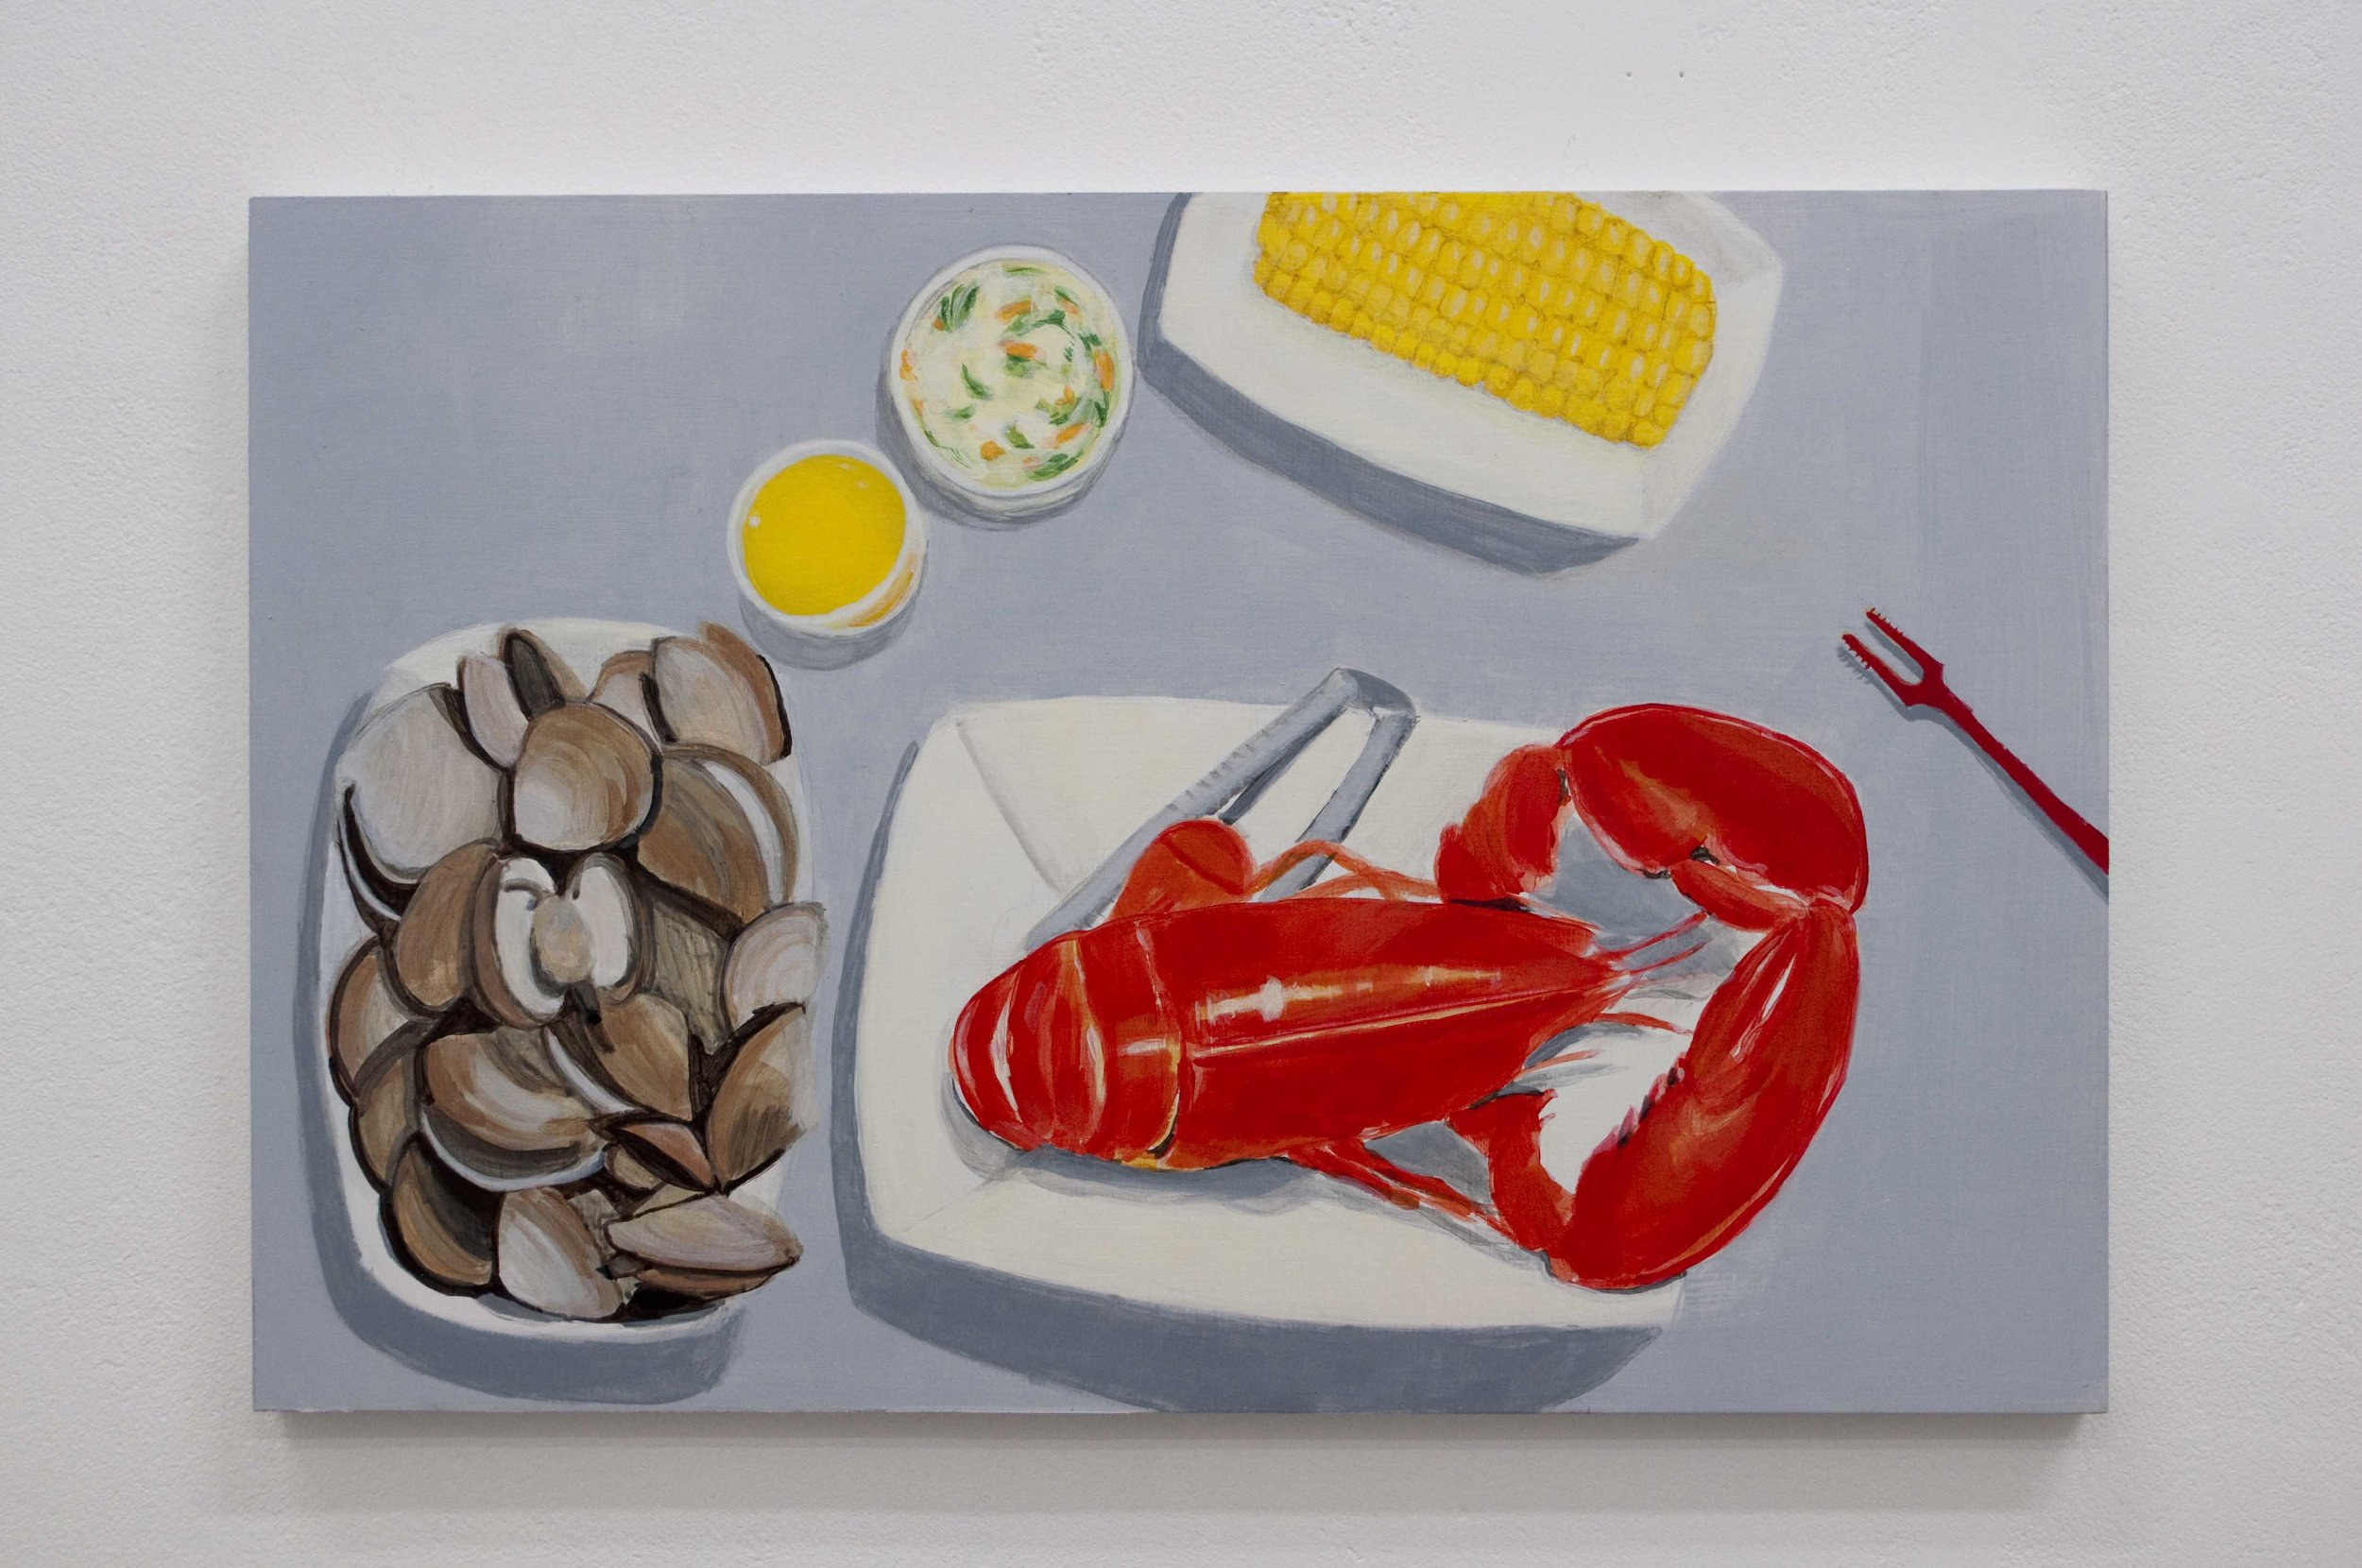 New England Lobster Dinner From the series Some American Food 2013 Acrylic on birch ply, 12 x 18 in